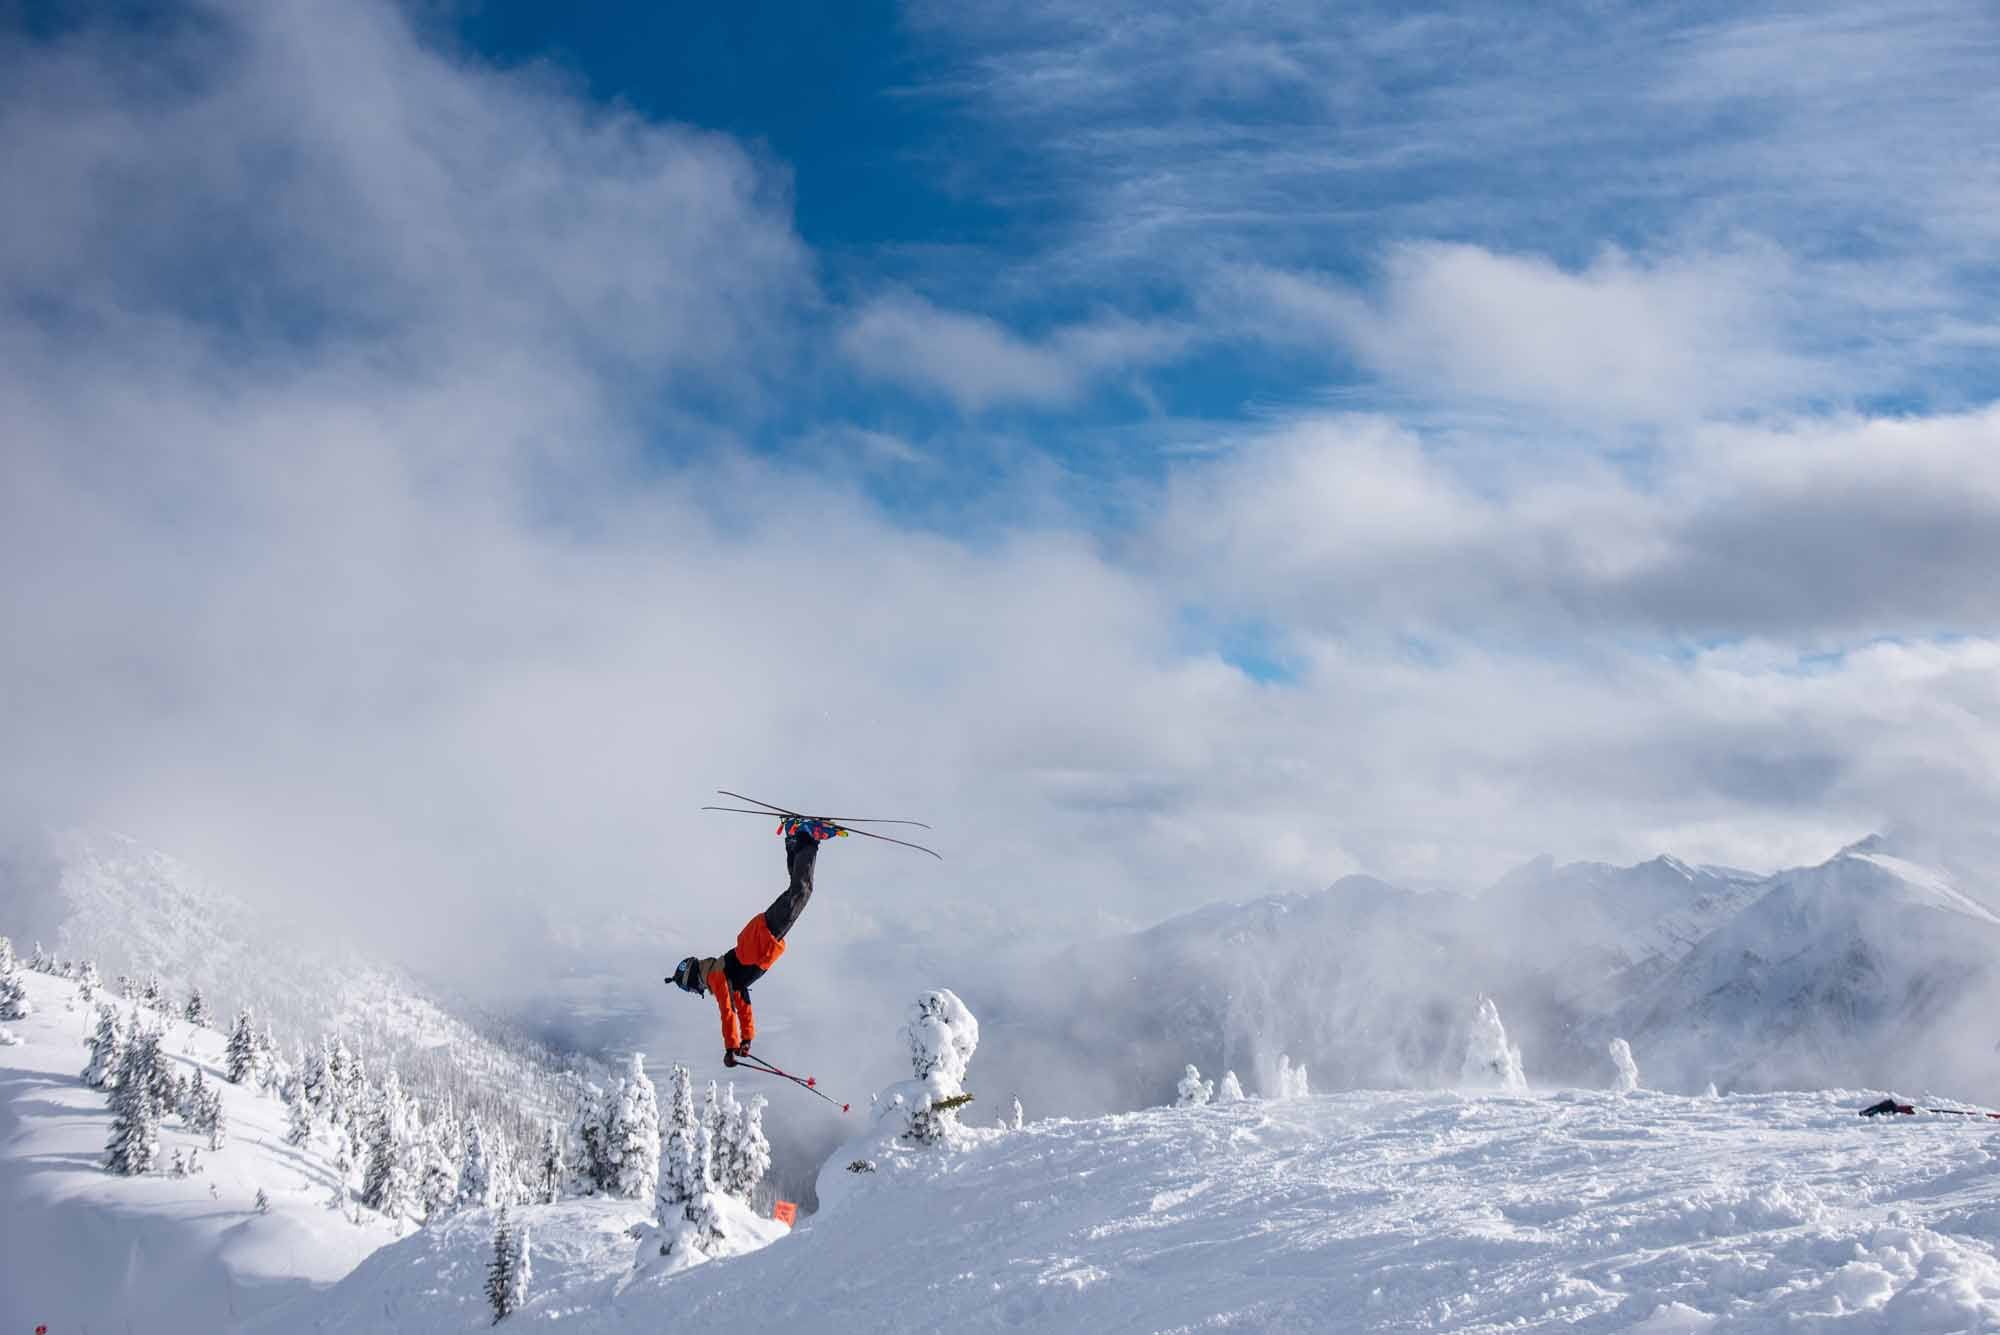 Into-the-Great-White-Open-Moms-Shred-Golden-BC-Allison-Kennedy-Davies-skier-air-Kicking-Horse